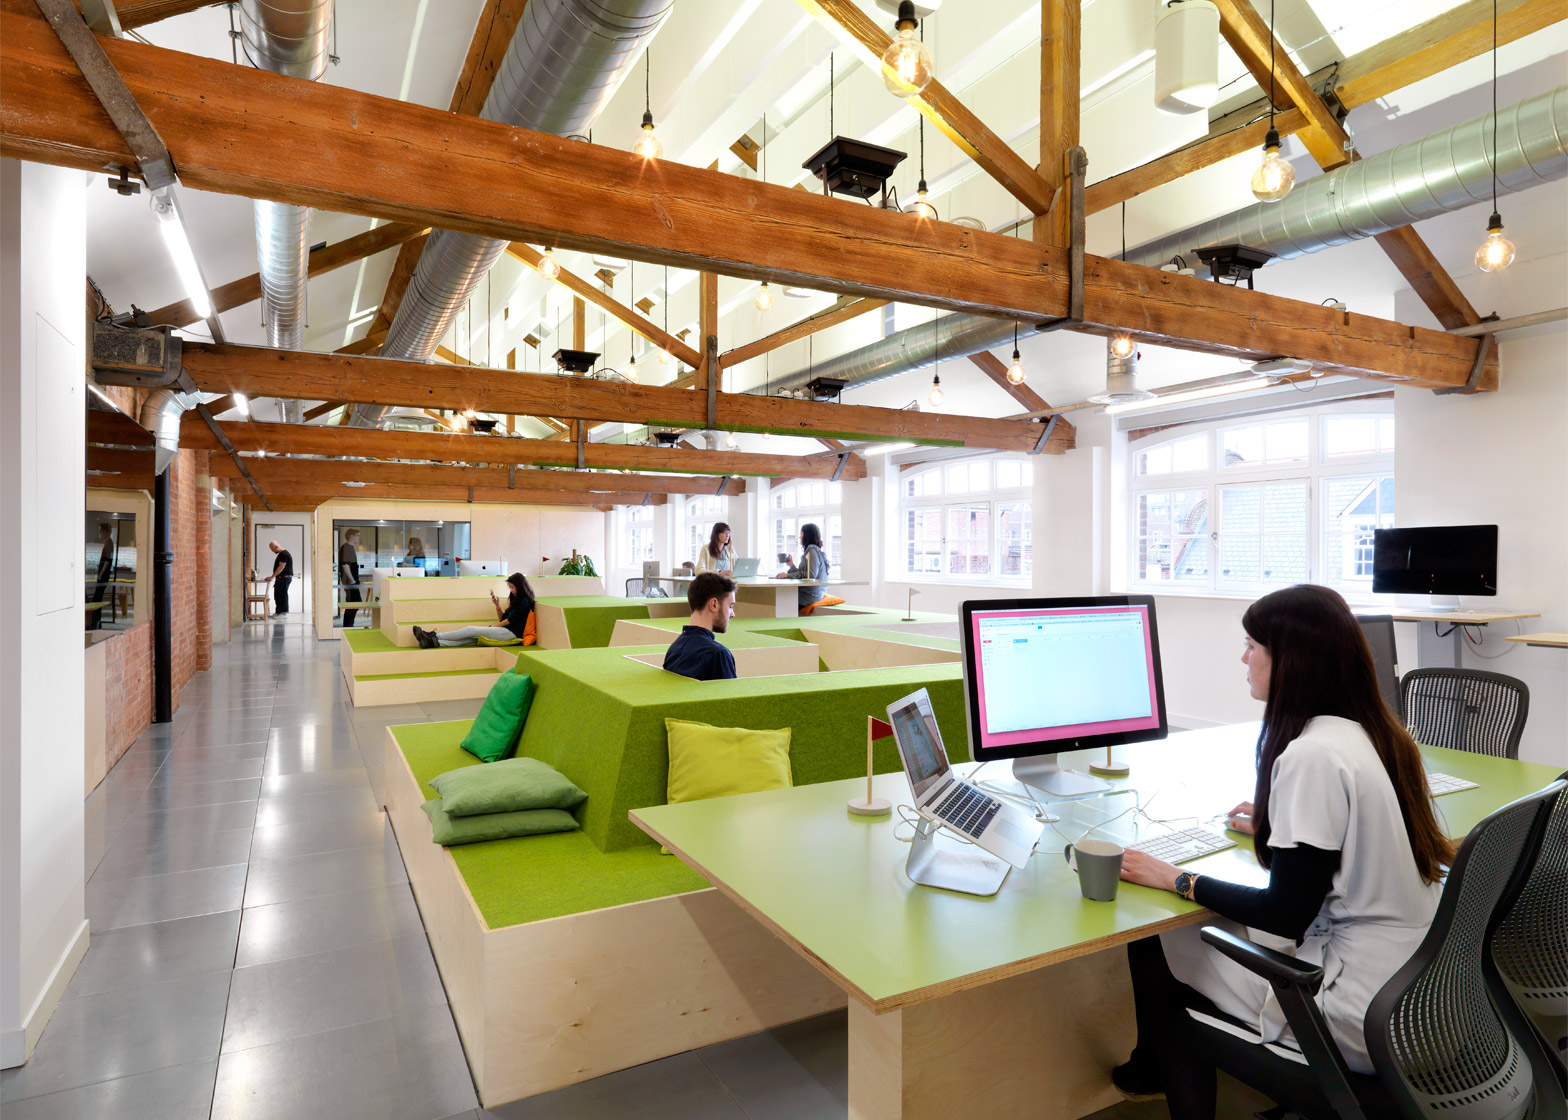 Open plan office design is preventing workers from for Office design productivity research